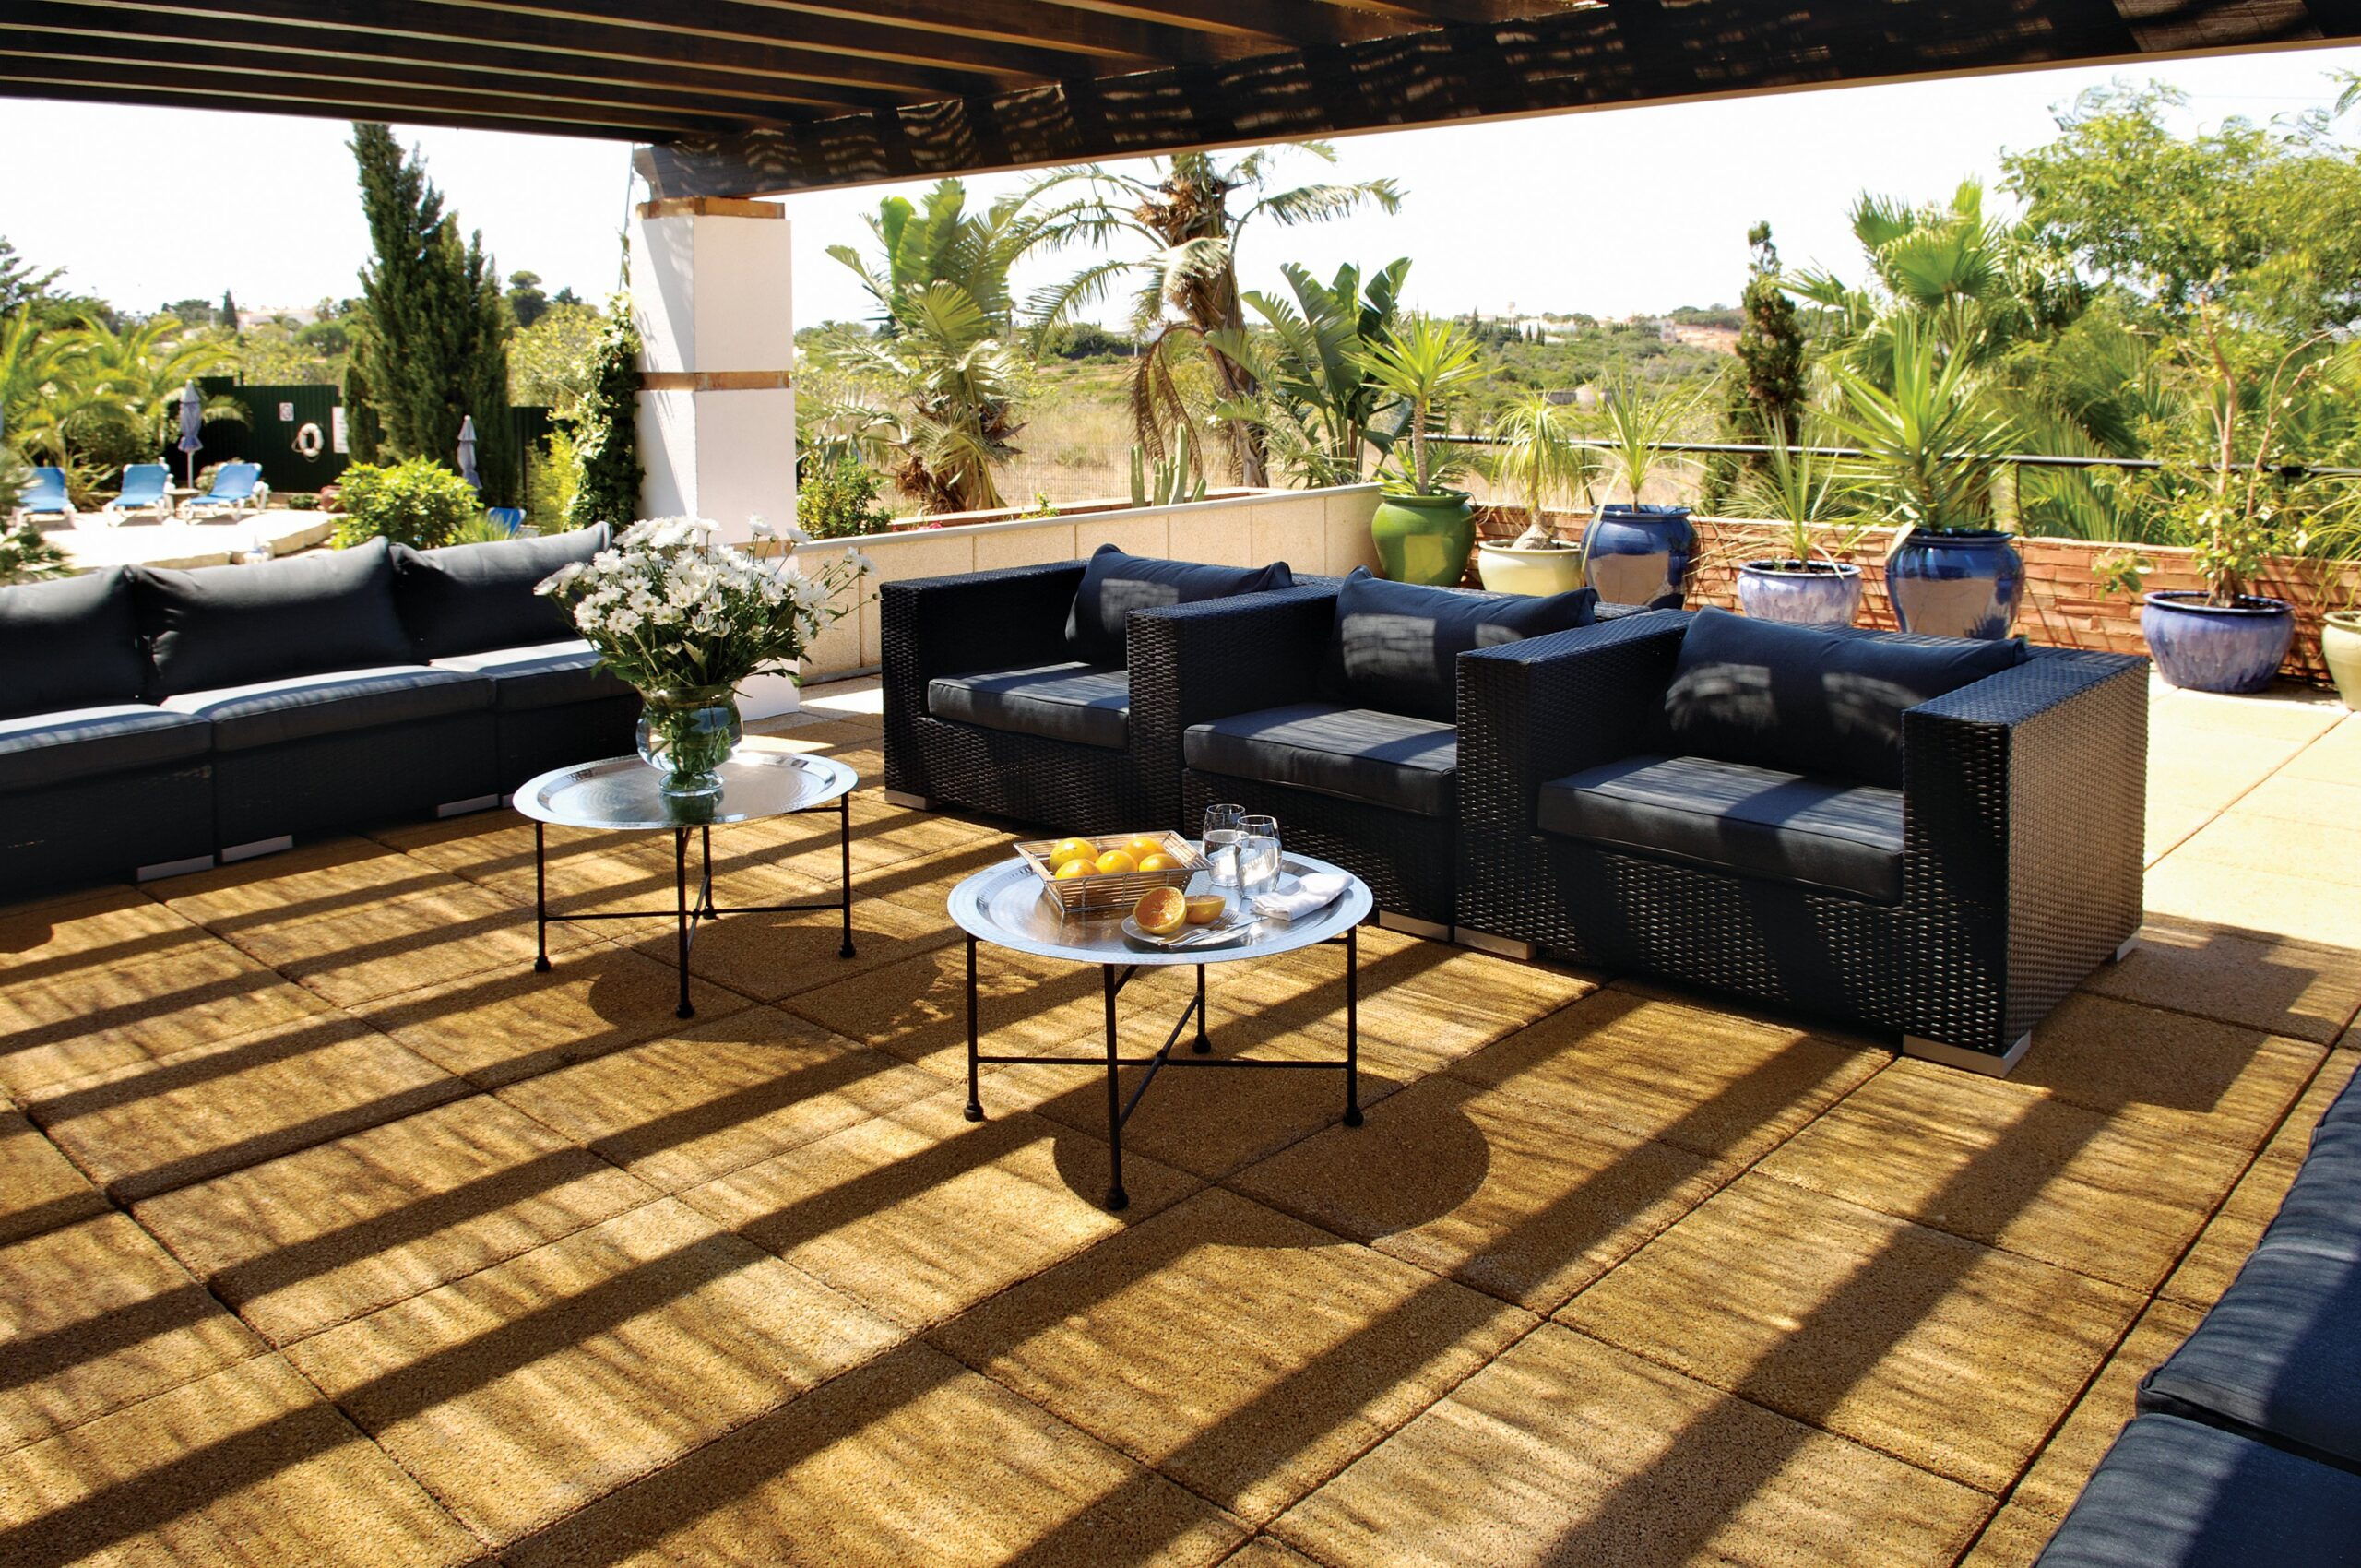 2.Portugal Boot Camp Abroad – Outside Dining Area 2